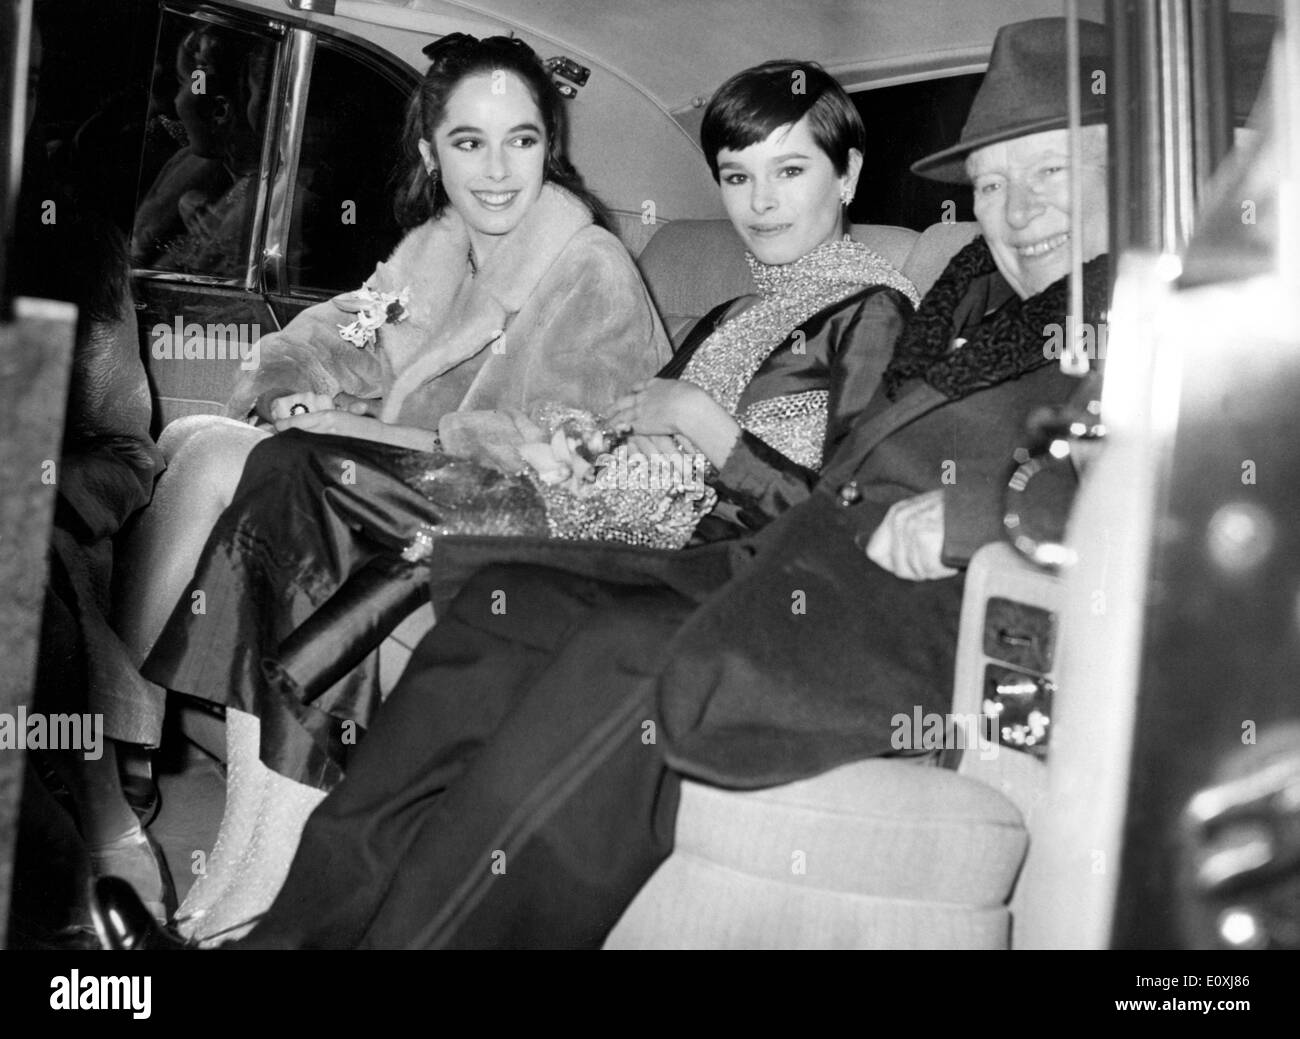 Actor Charlie Chaplin in a car with his daughters Josephine and Geraldine - Stock Image